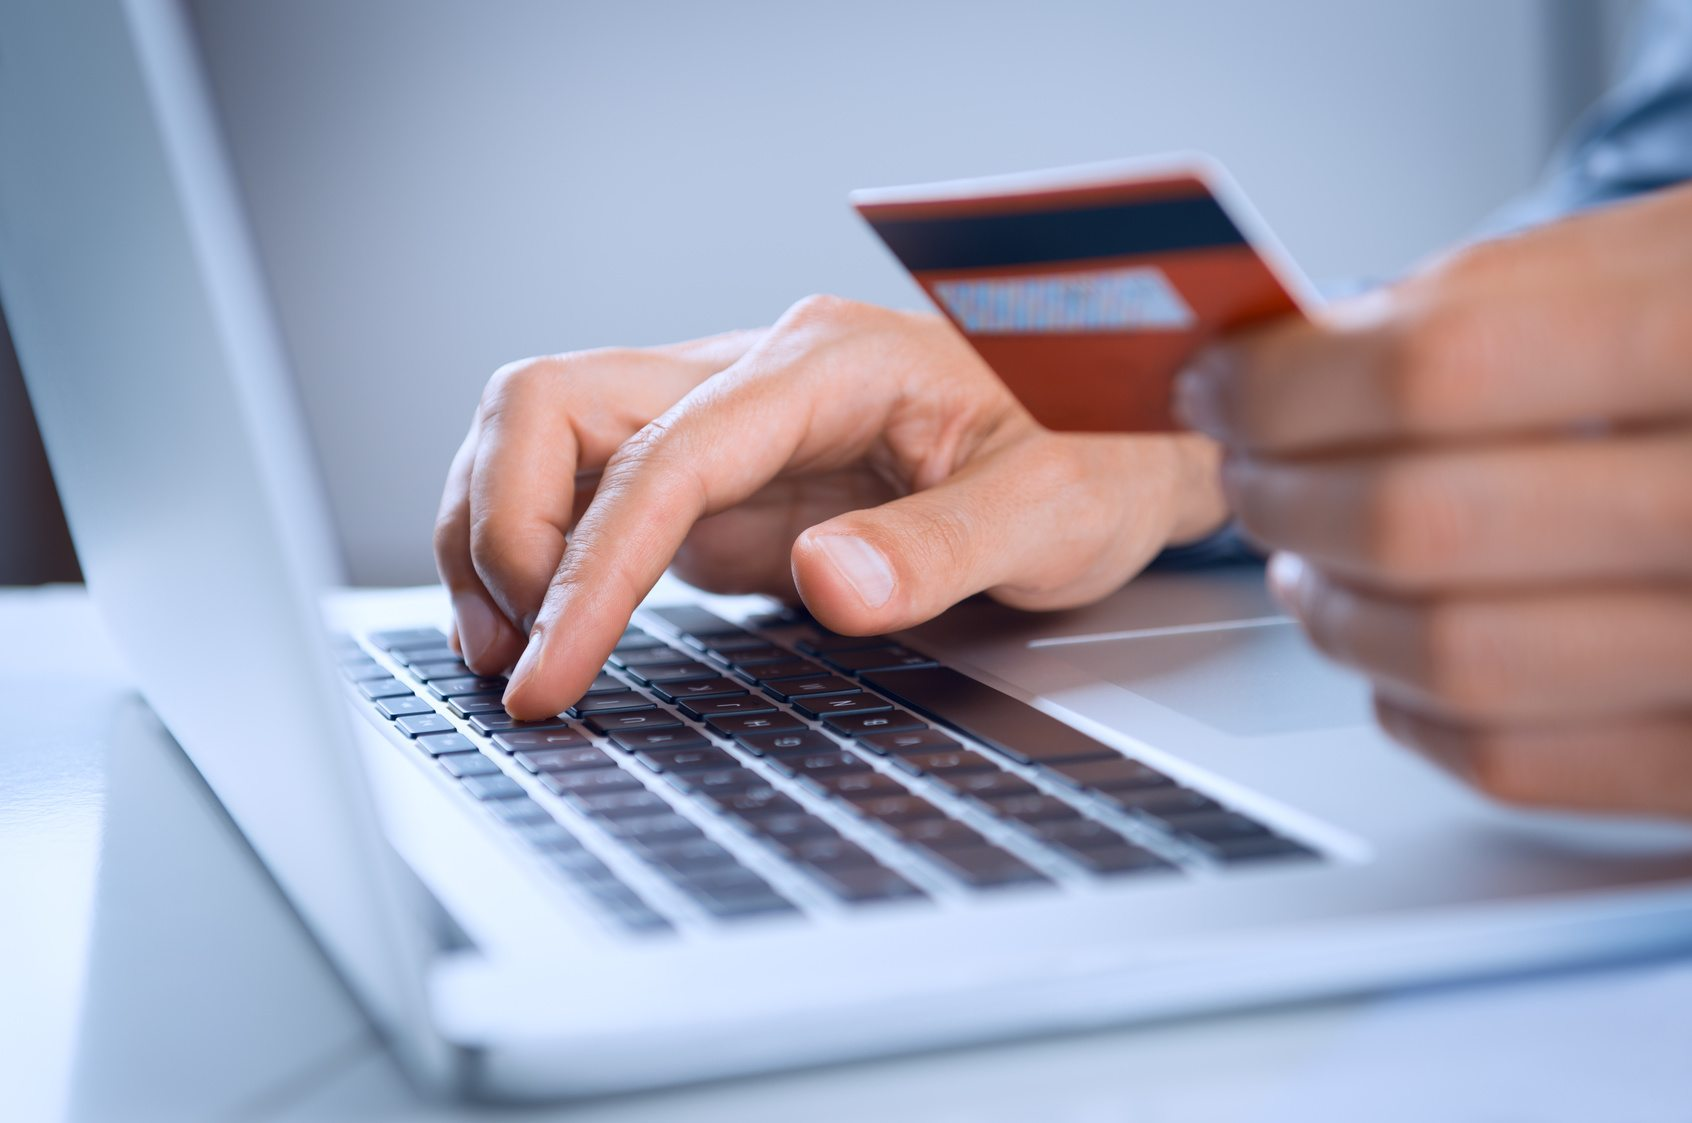 Third Party Credit Card Processing